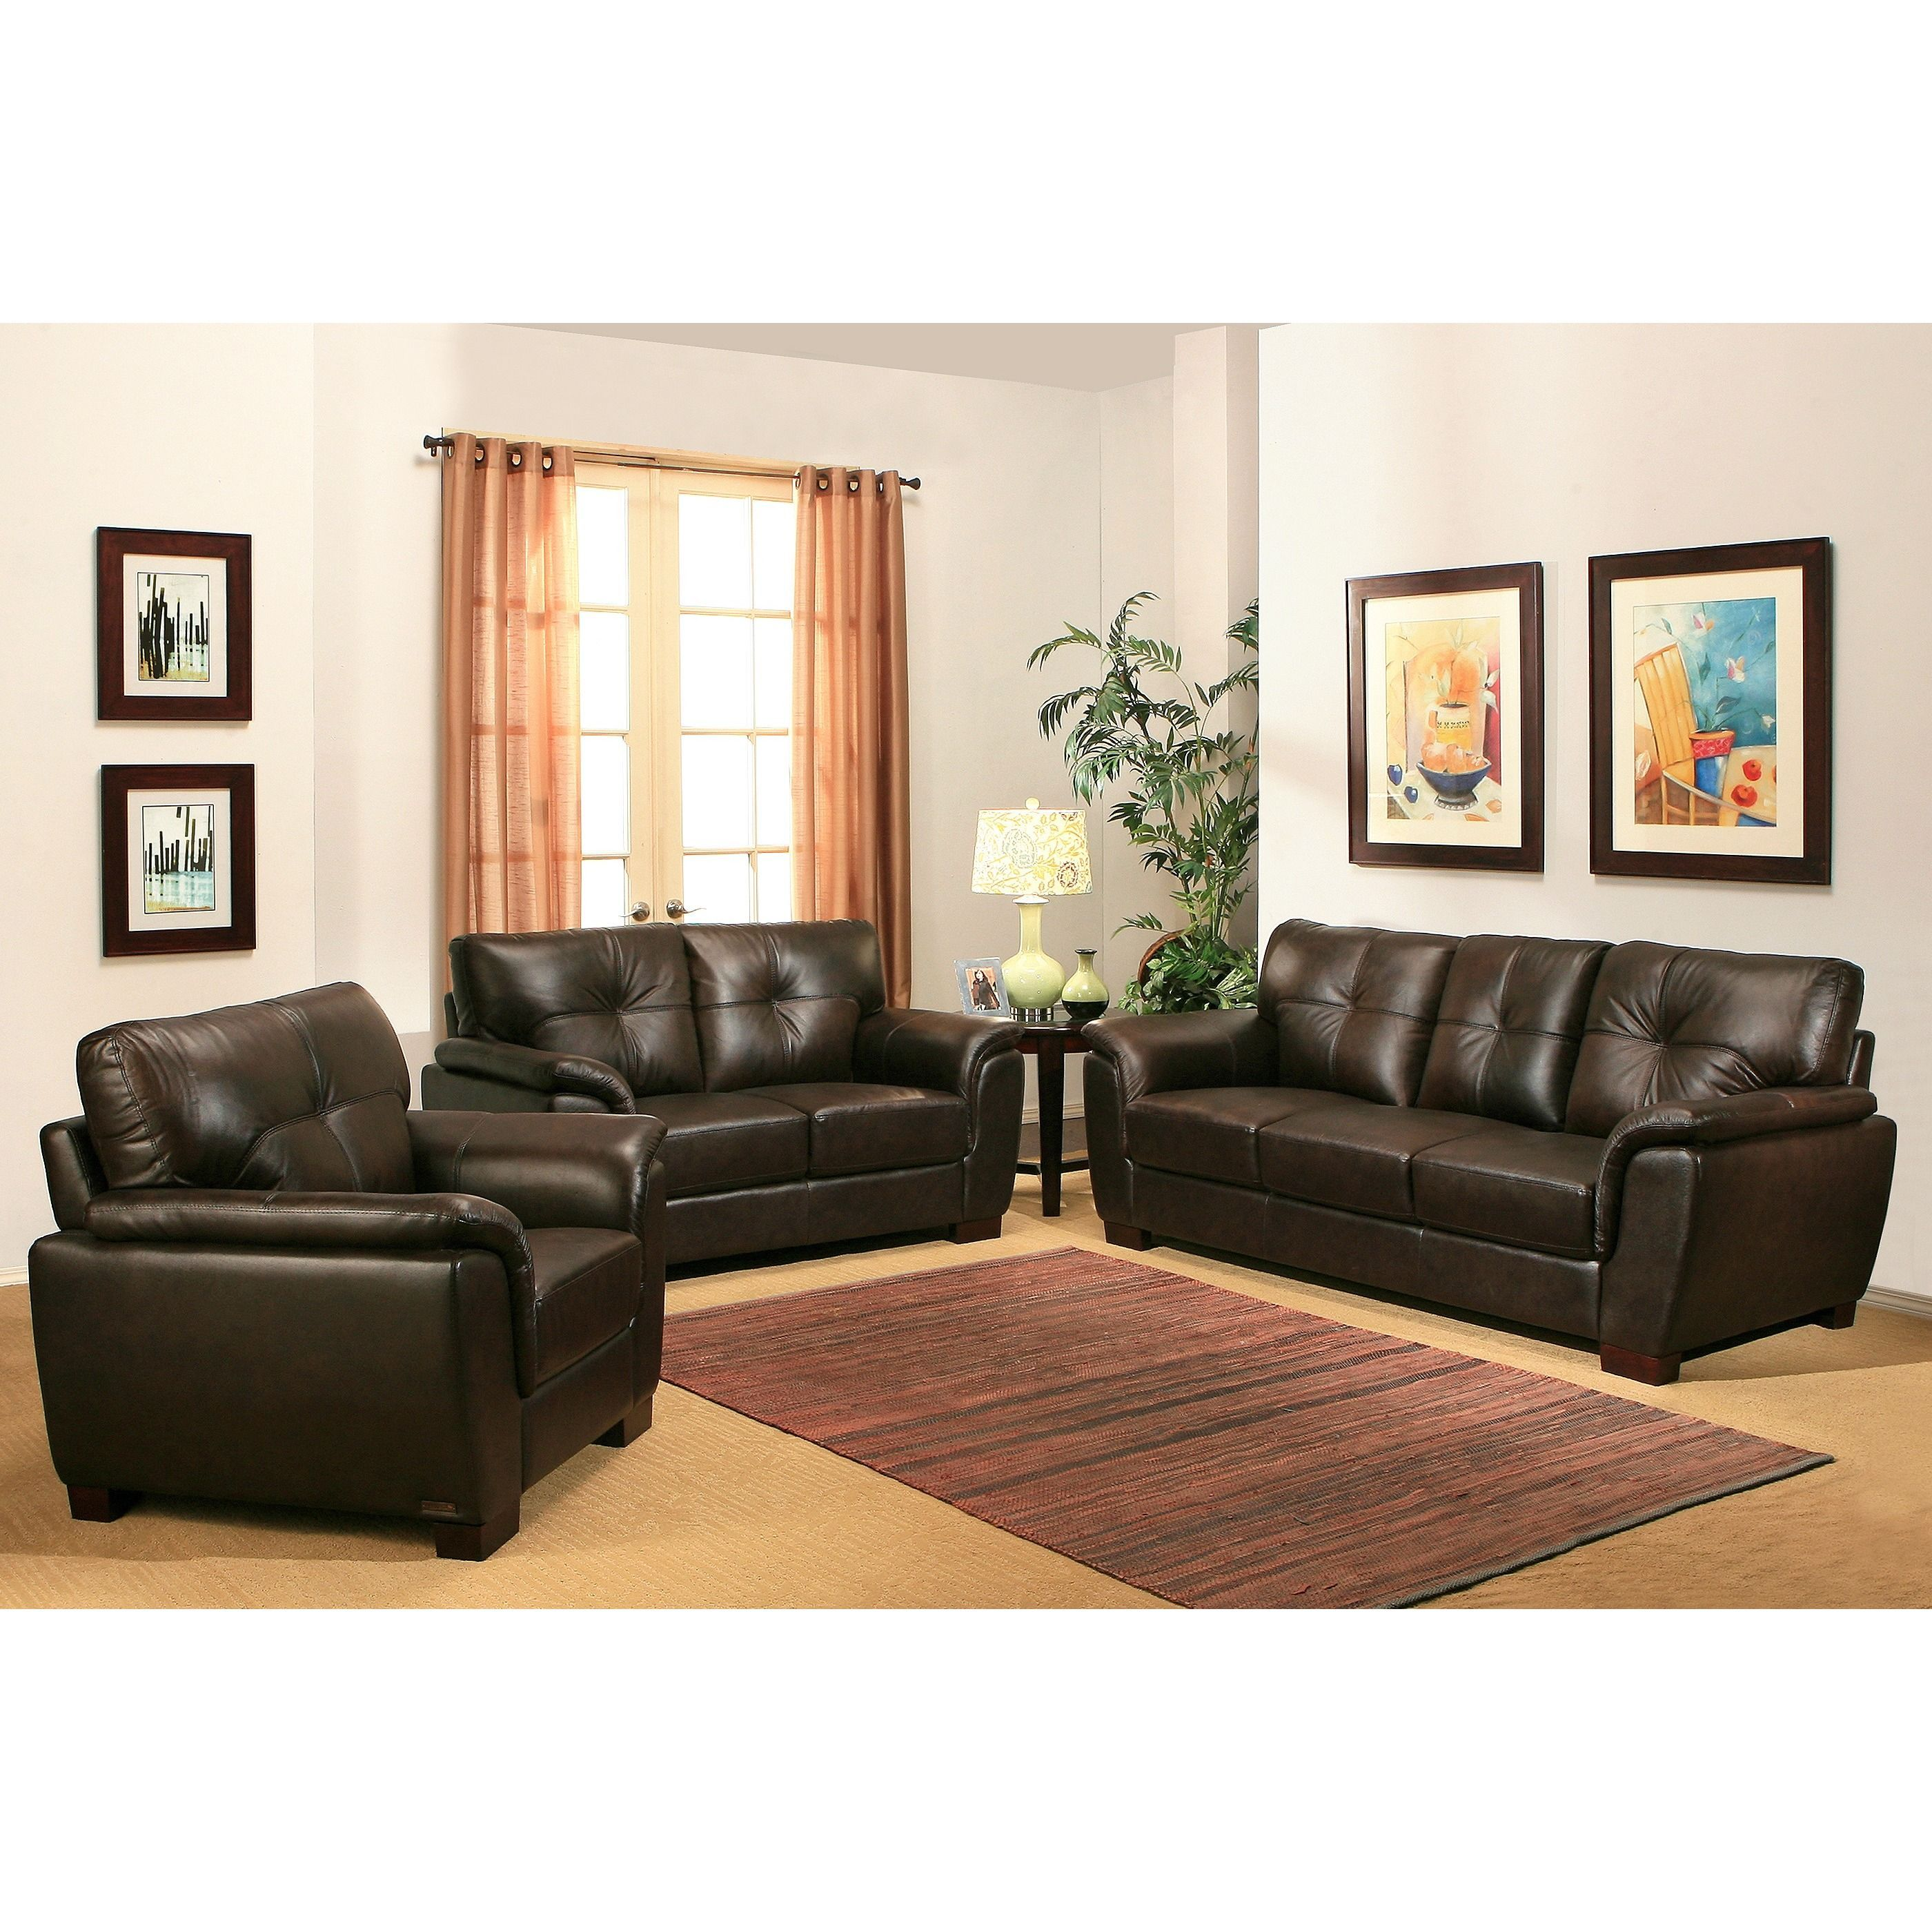 within com stagebull and sofa leather loveseat wonderful italian java brown attractive set hawkins chair